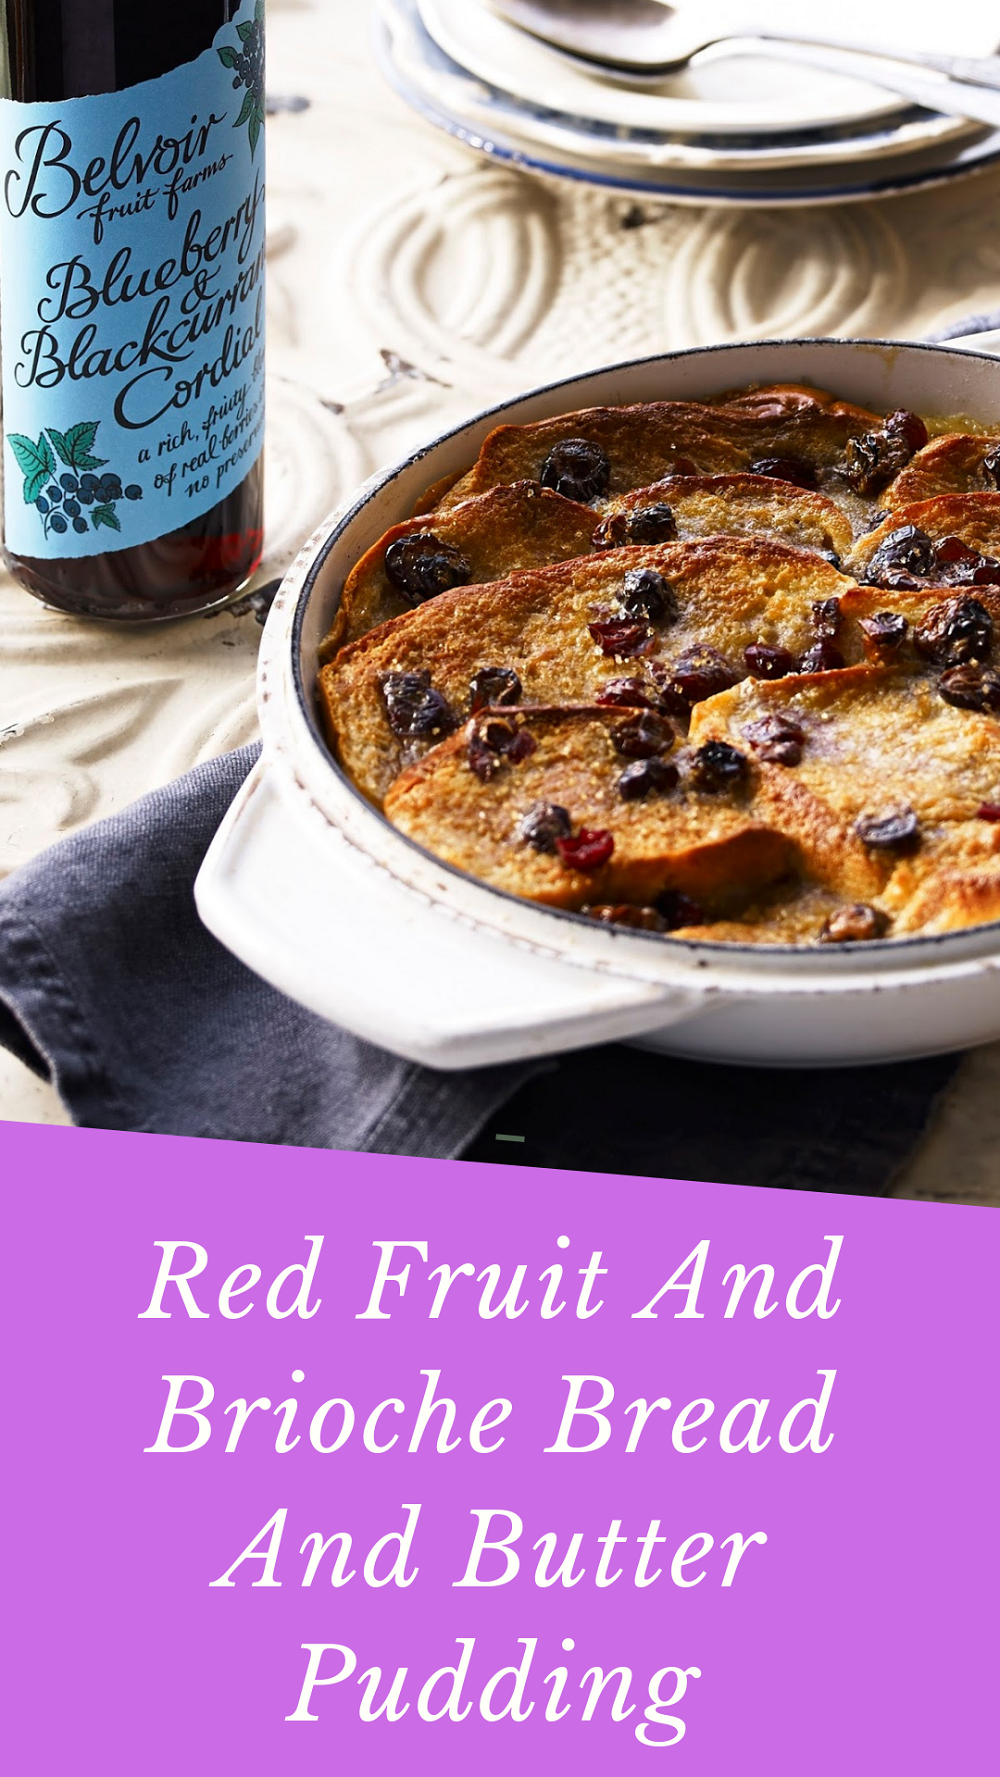 Red Fruit And Brioche Bread And Butter Pudding